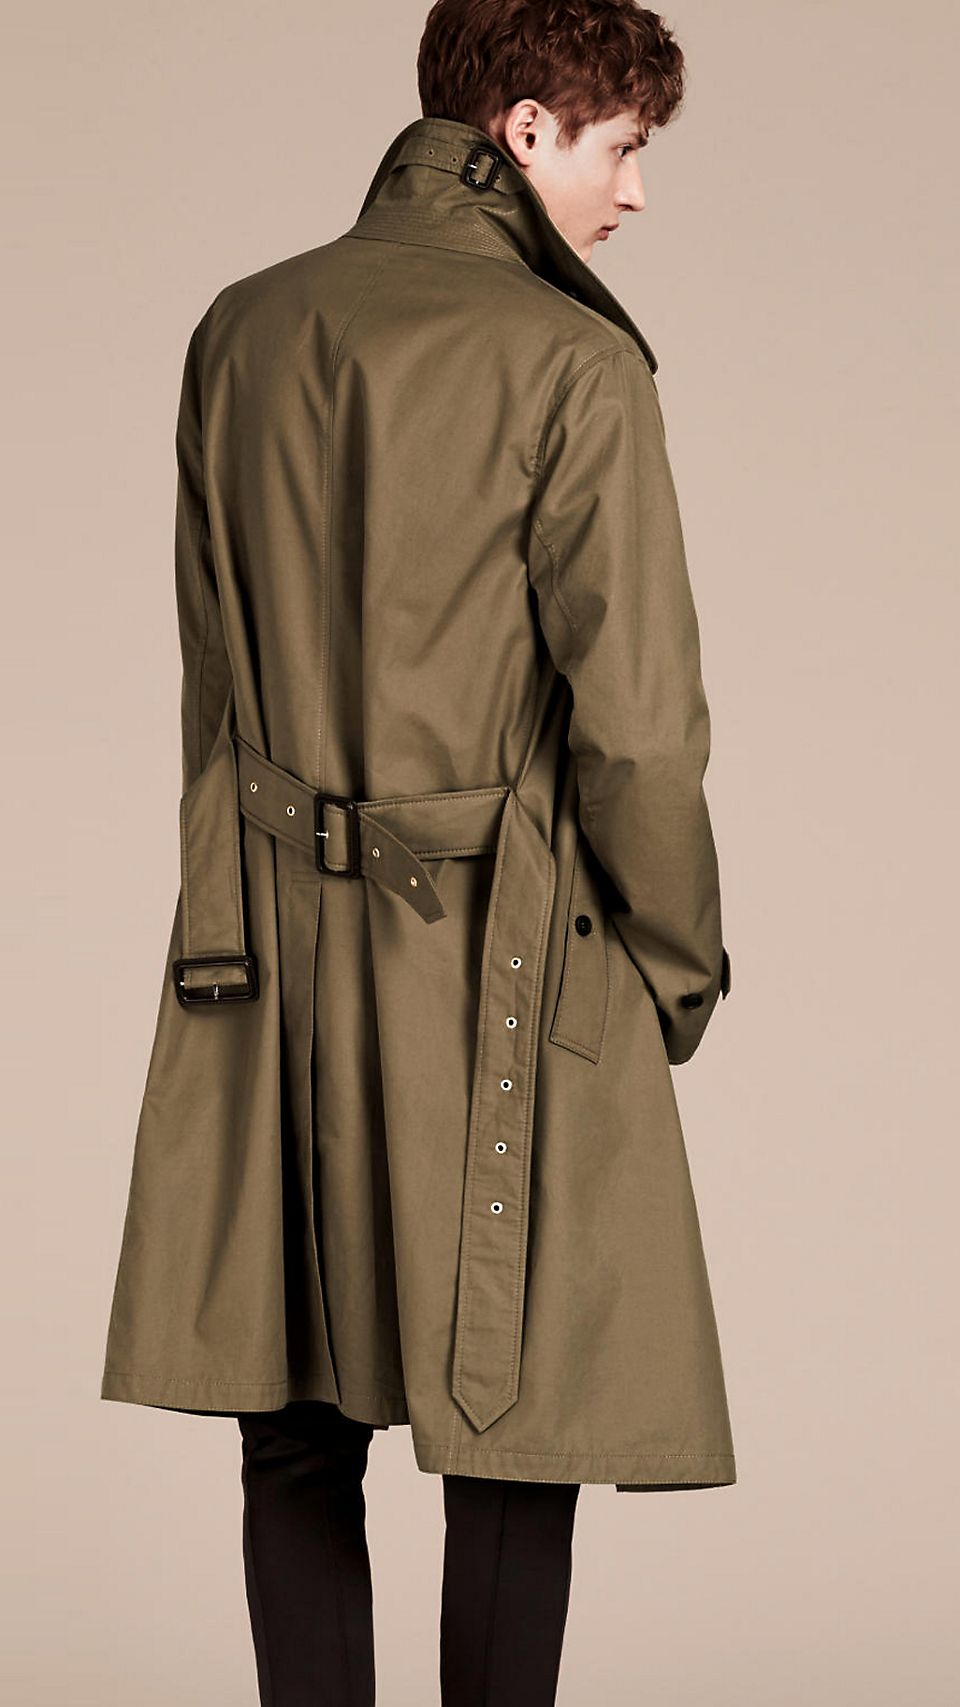 Men's Trench Coats